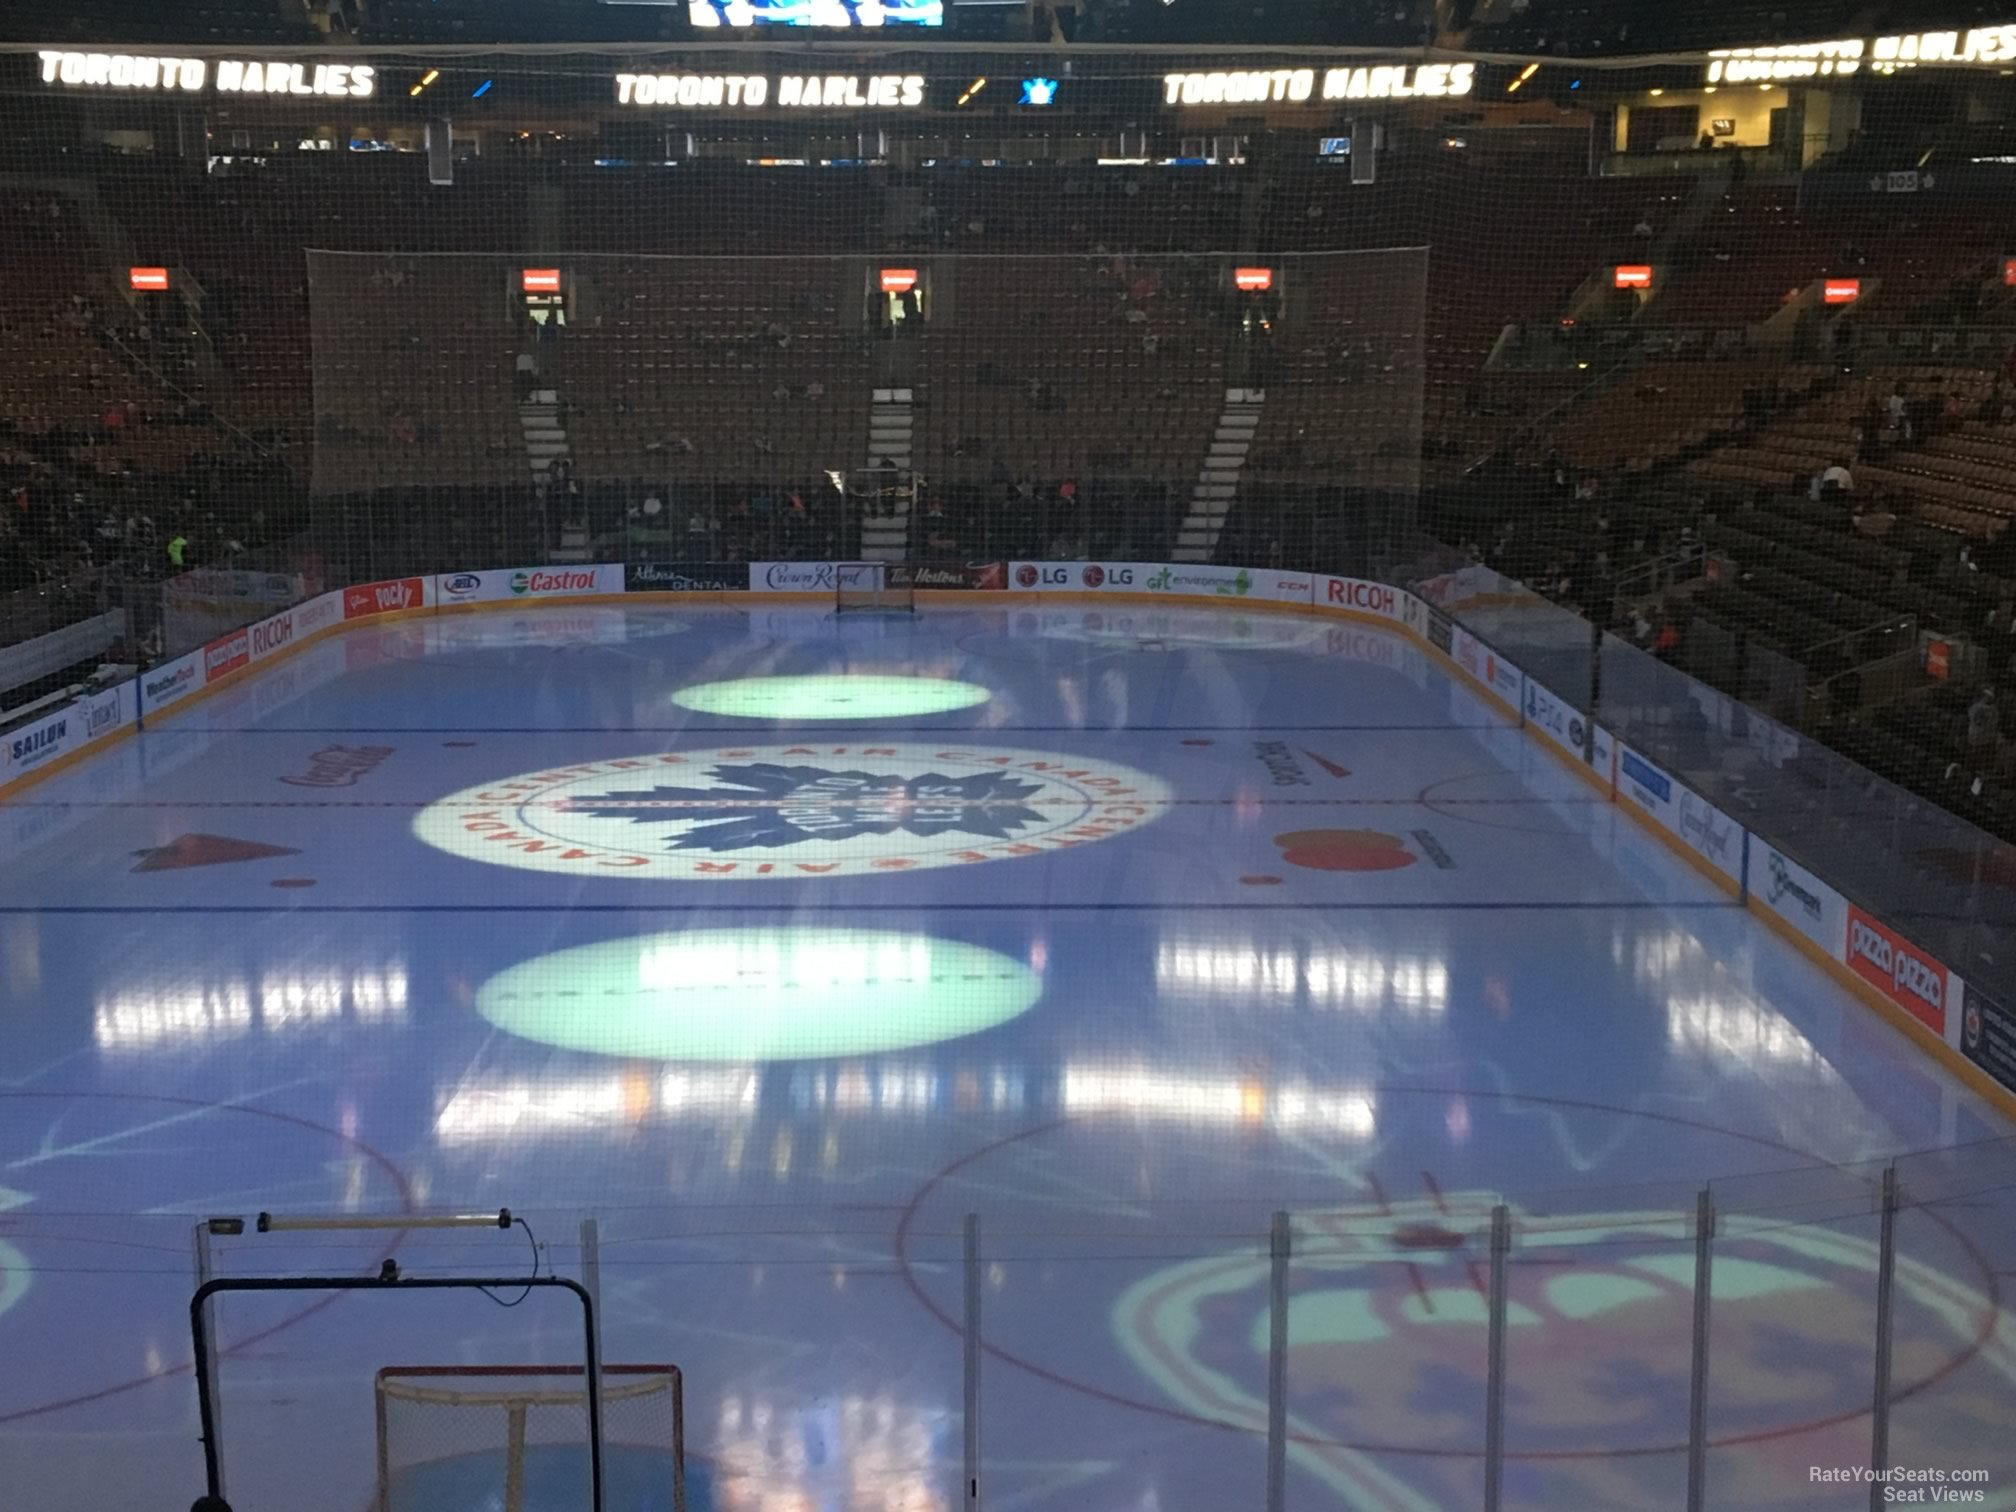 Toronto Maple Leafs Seat View for Scotiabank Arena Section 113, Row 20